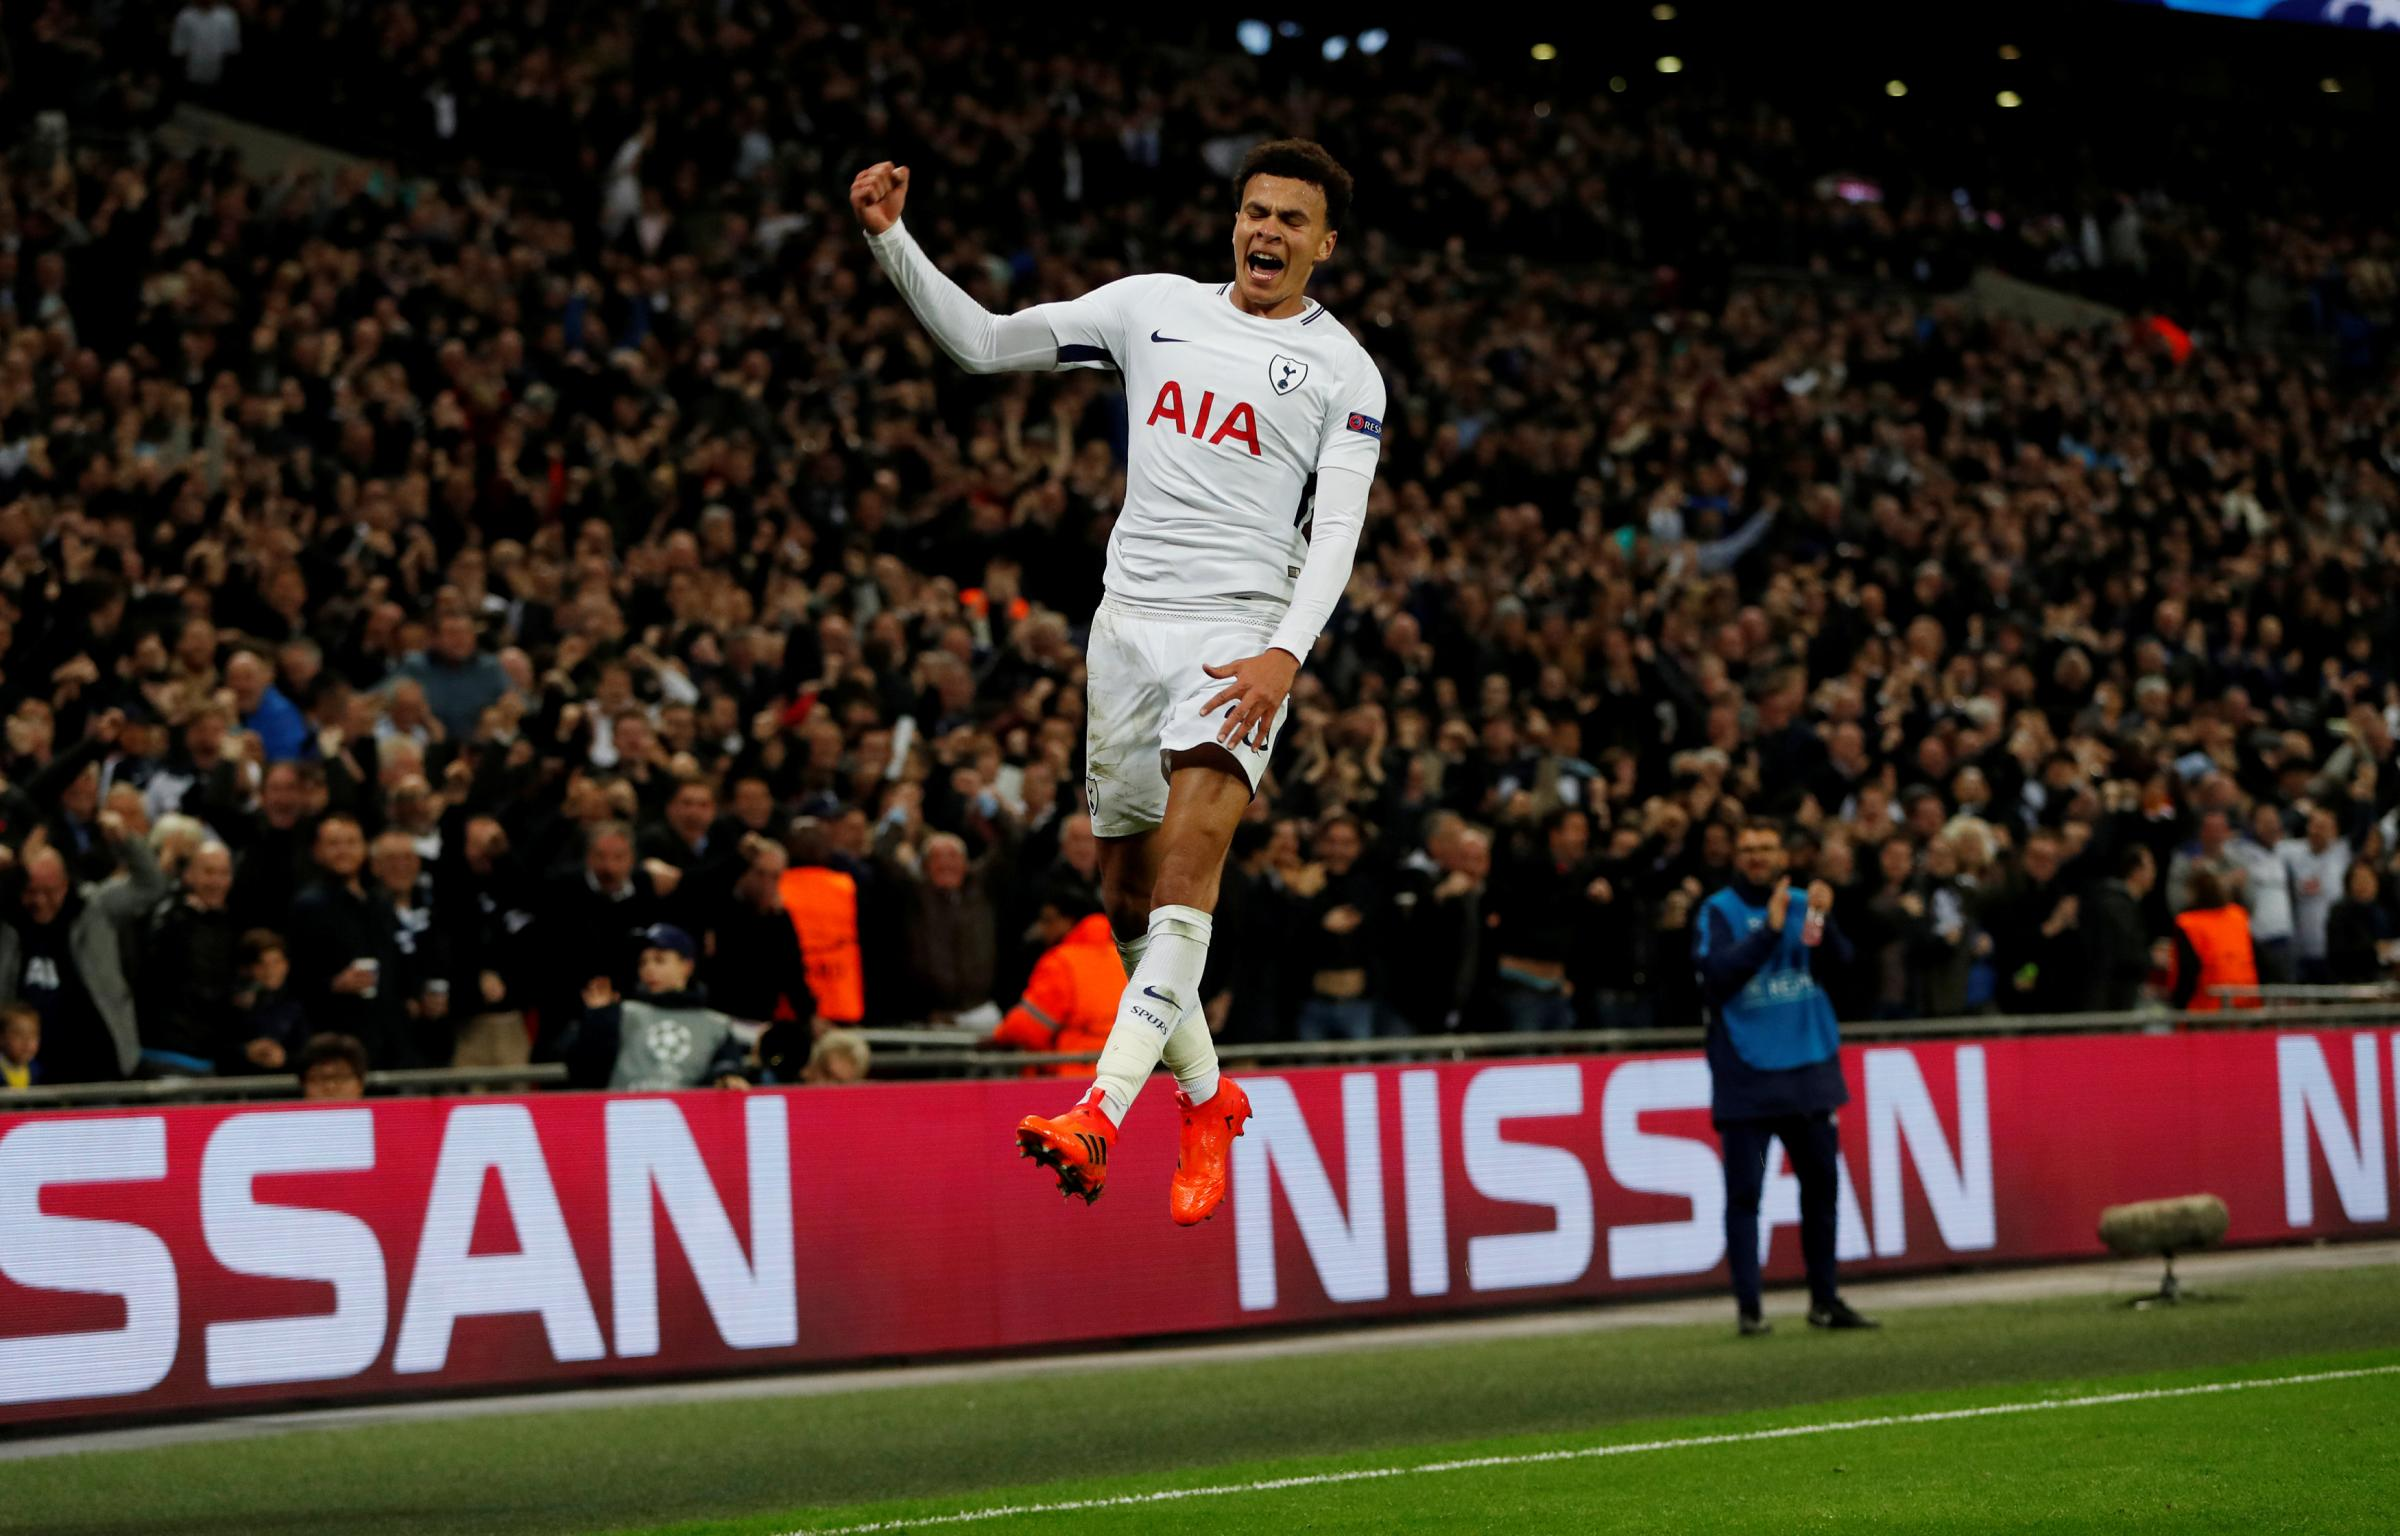 Dele Alli celebrates scoring his second goal against Real Madrid. Picture: Action Images